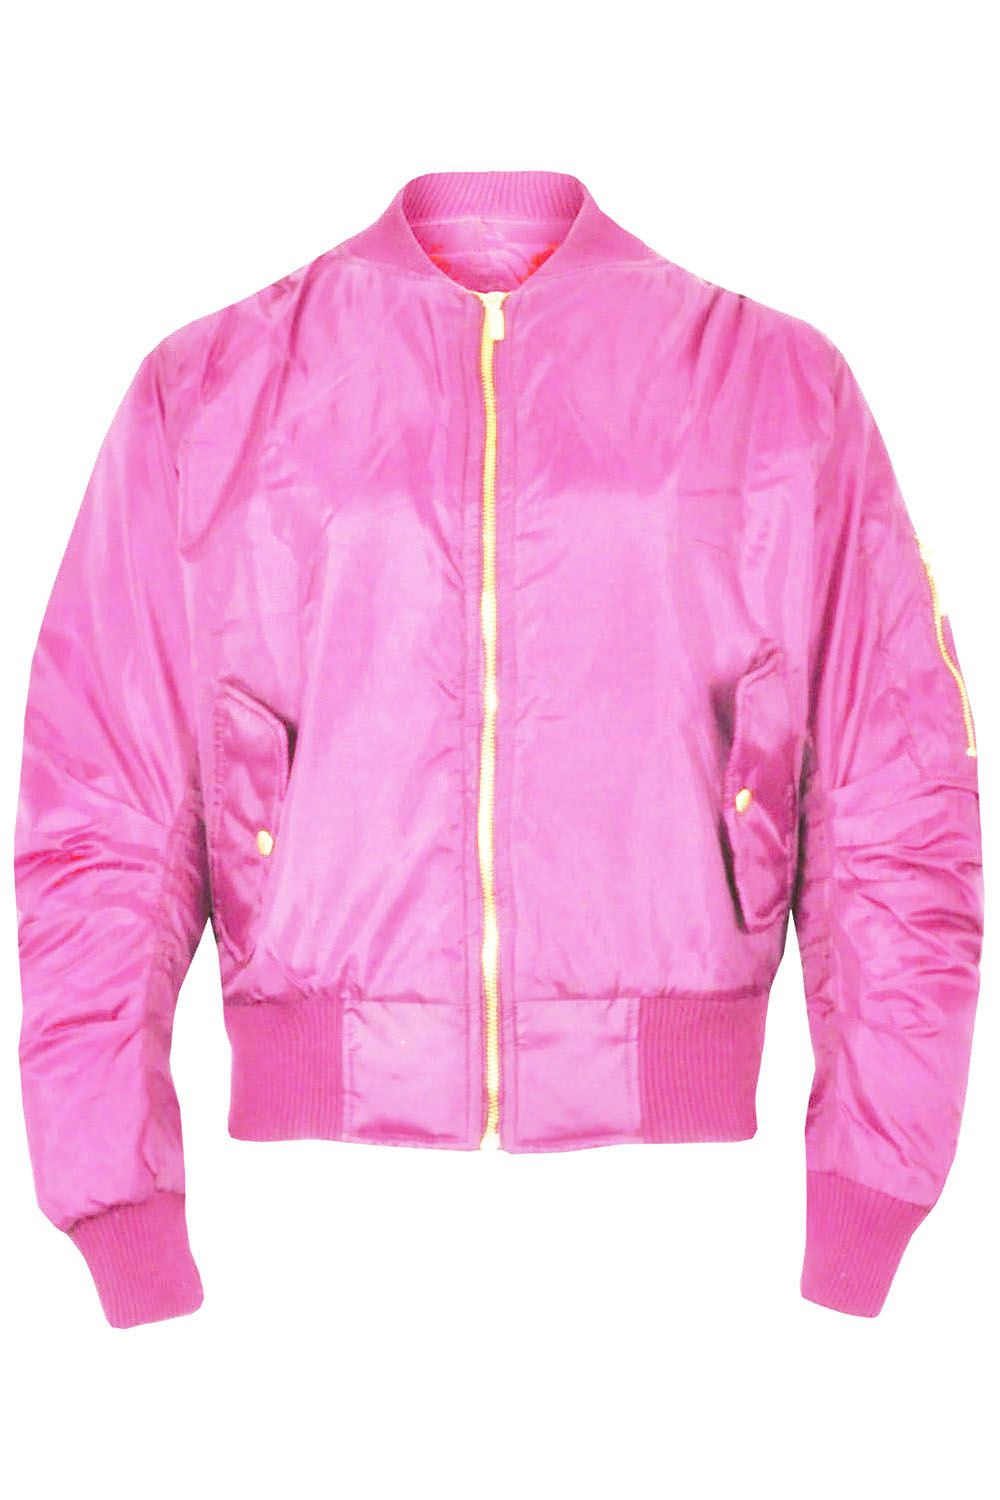 Shop for and buy kids bomber jacket online at Macy's. Find kids bomber jacket at Macy's.